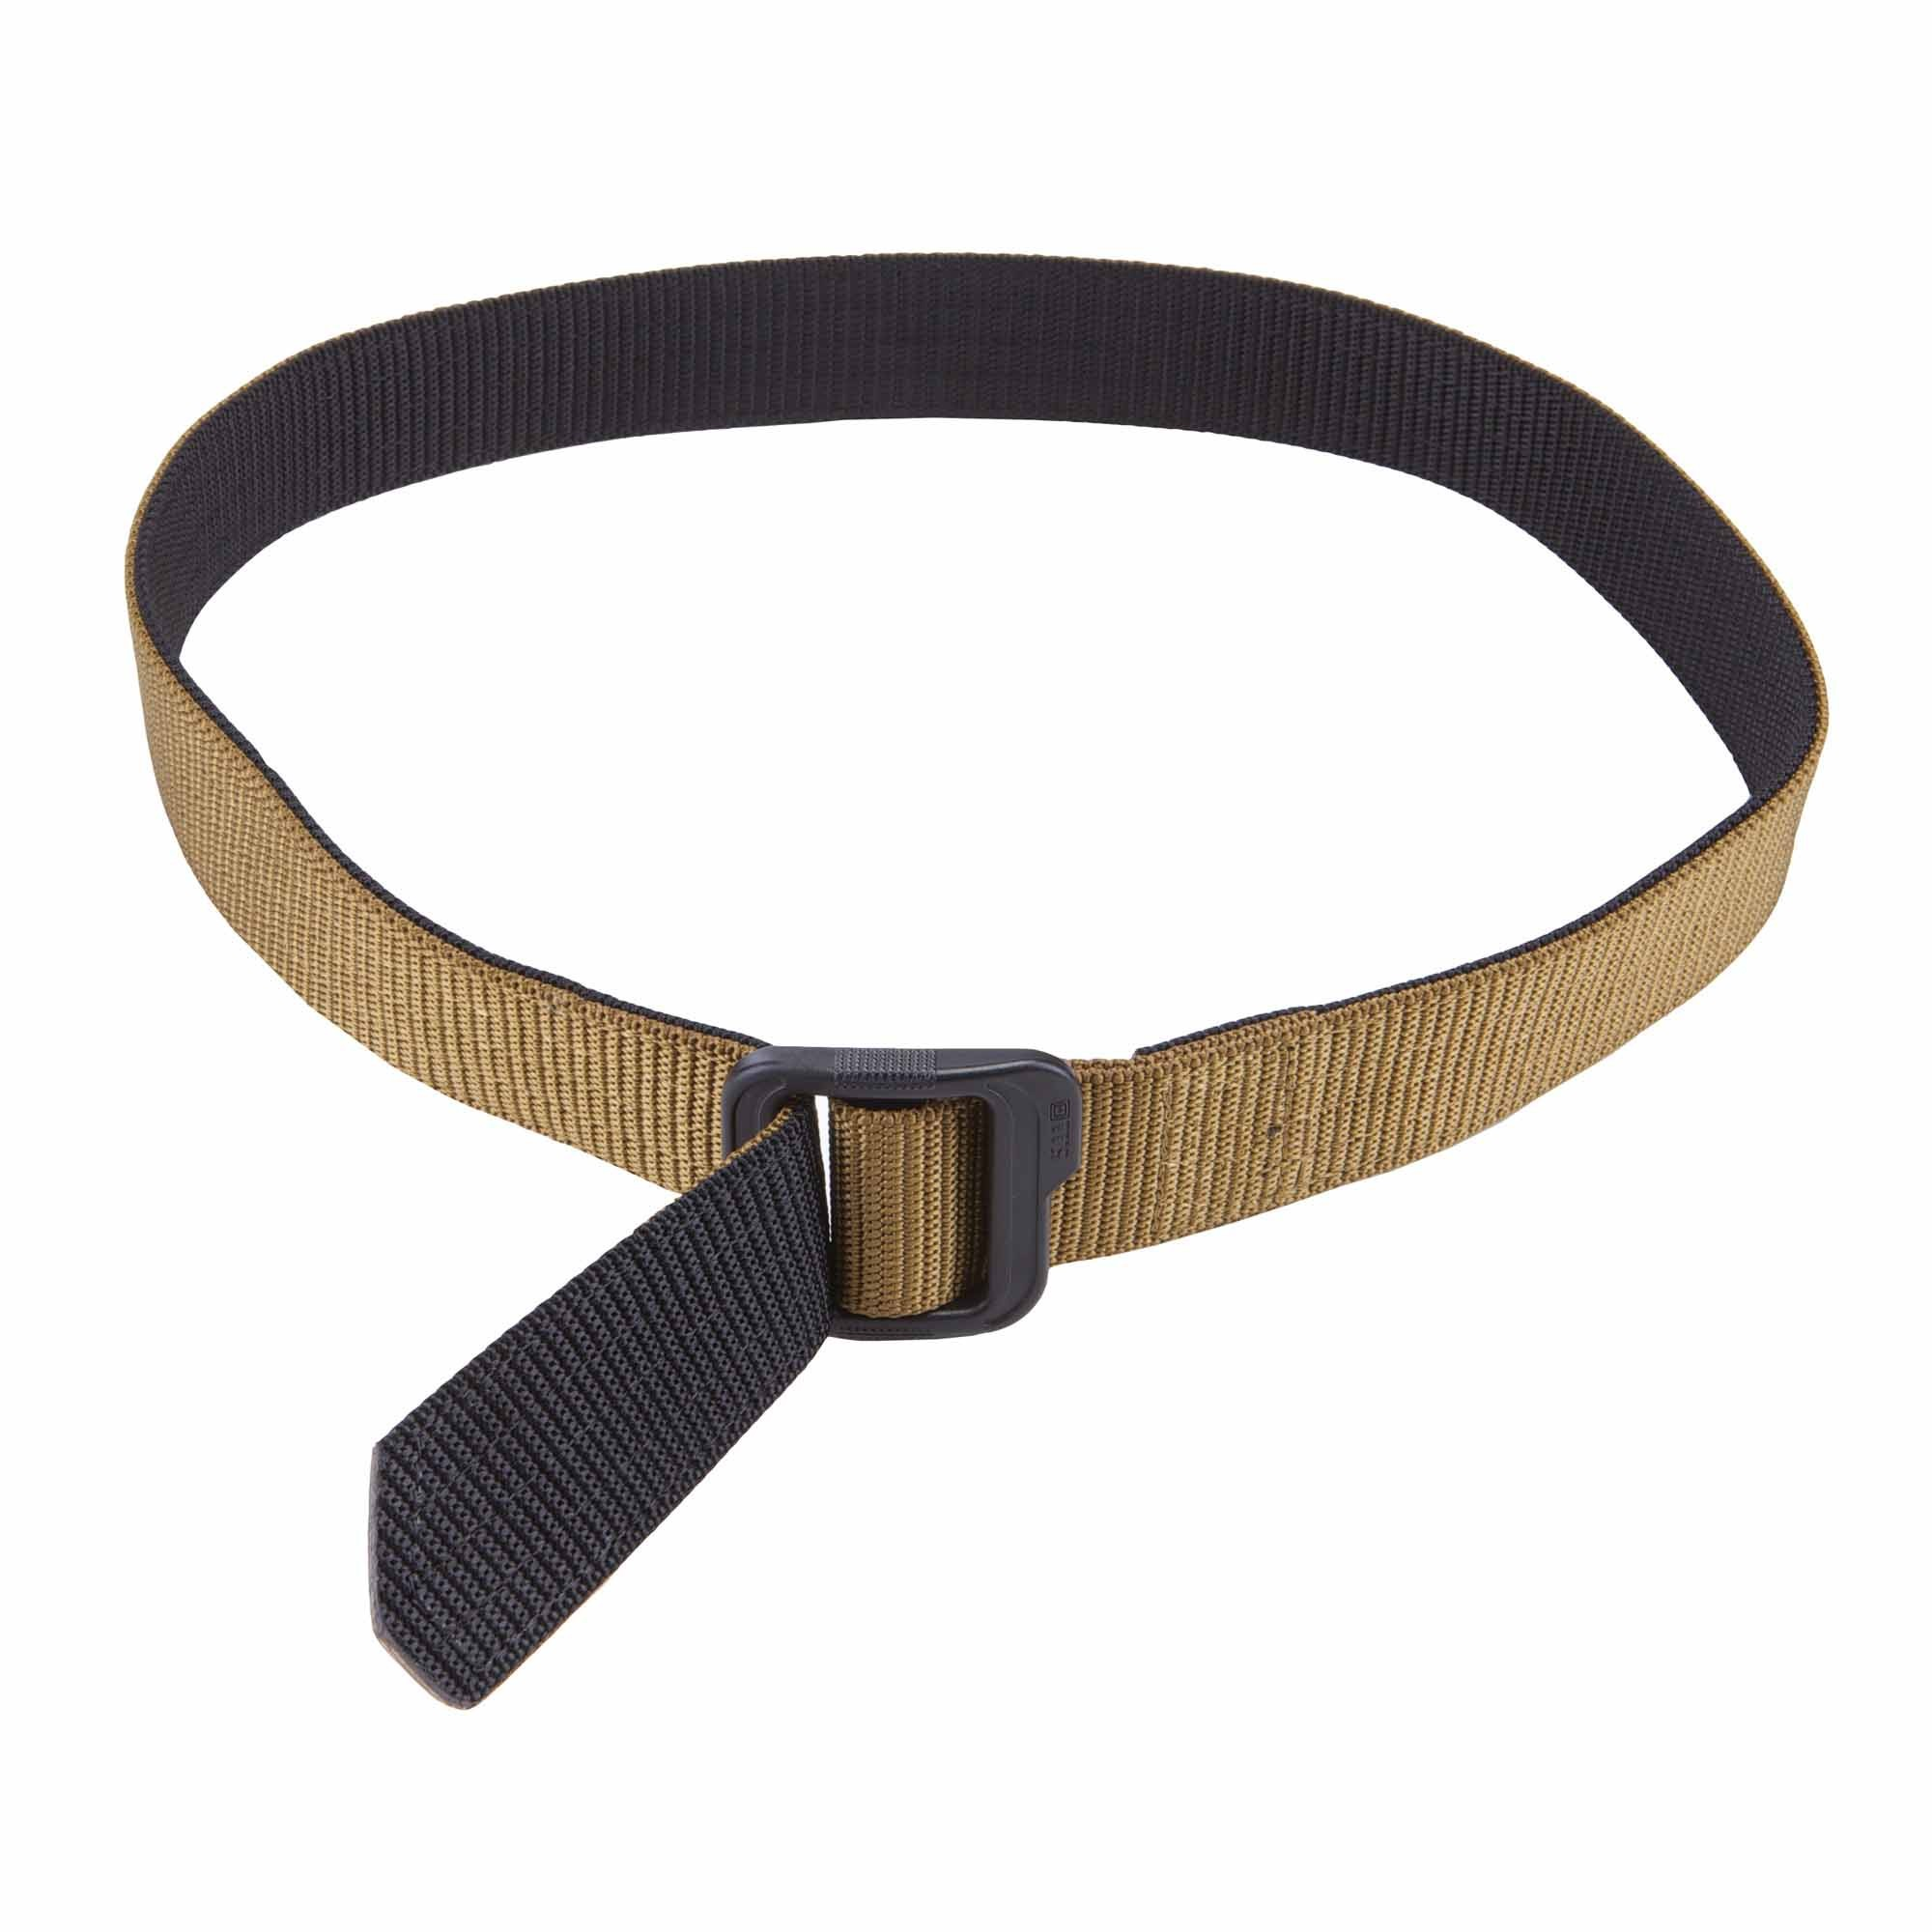 5.11 Double Duty Belt – 1.75″ Wide